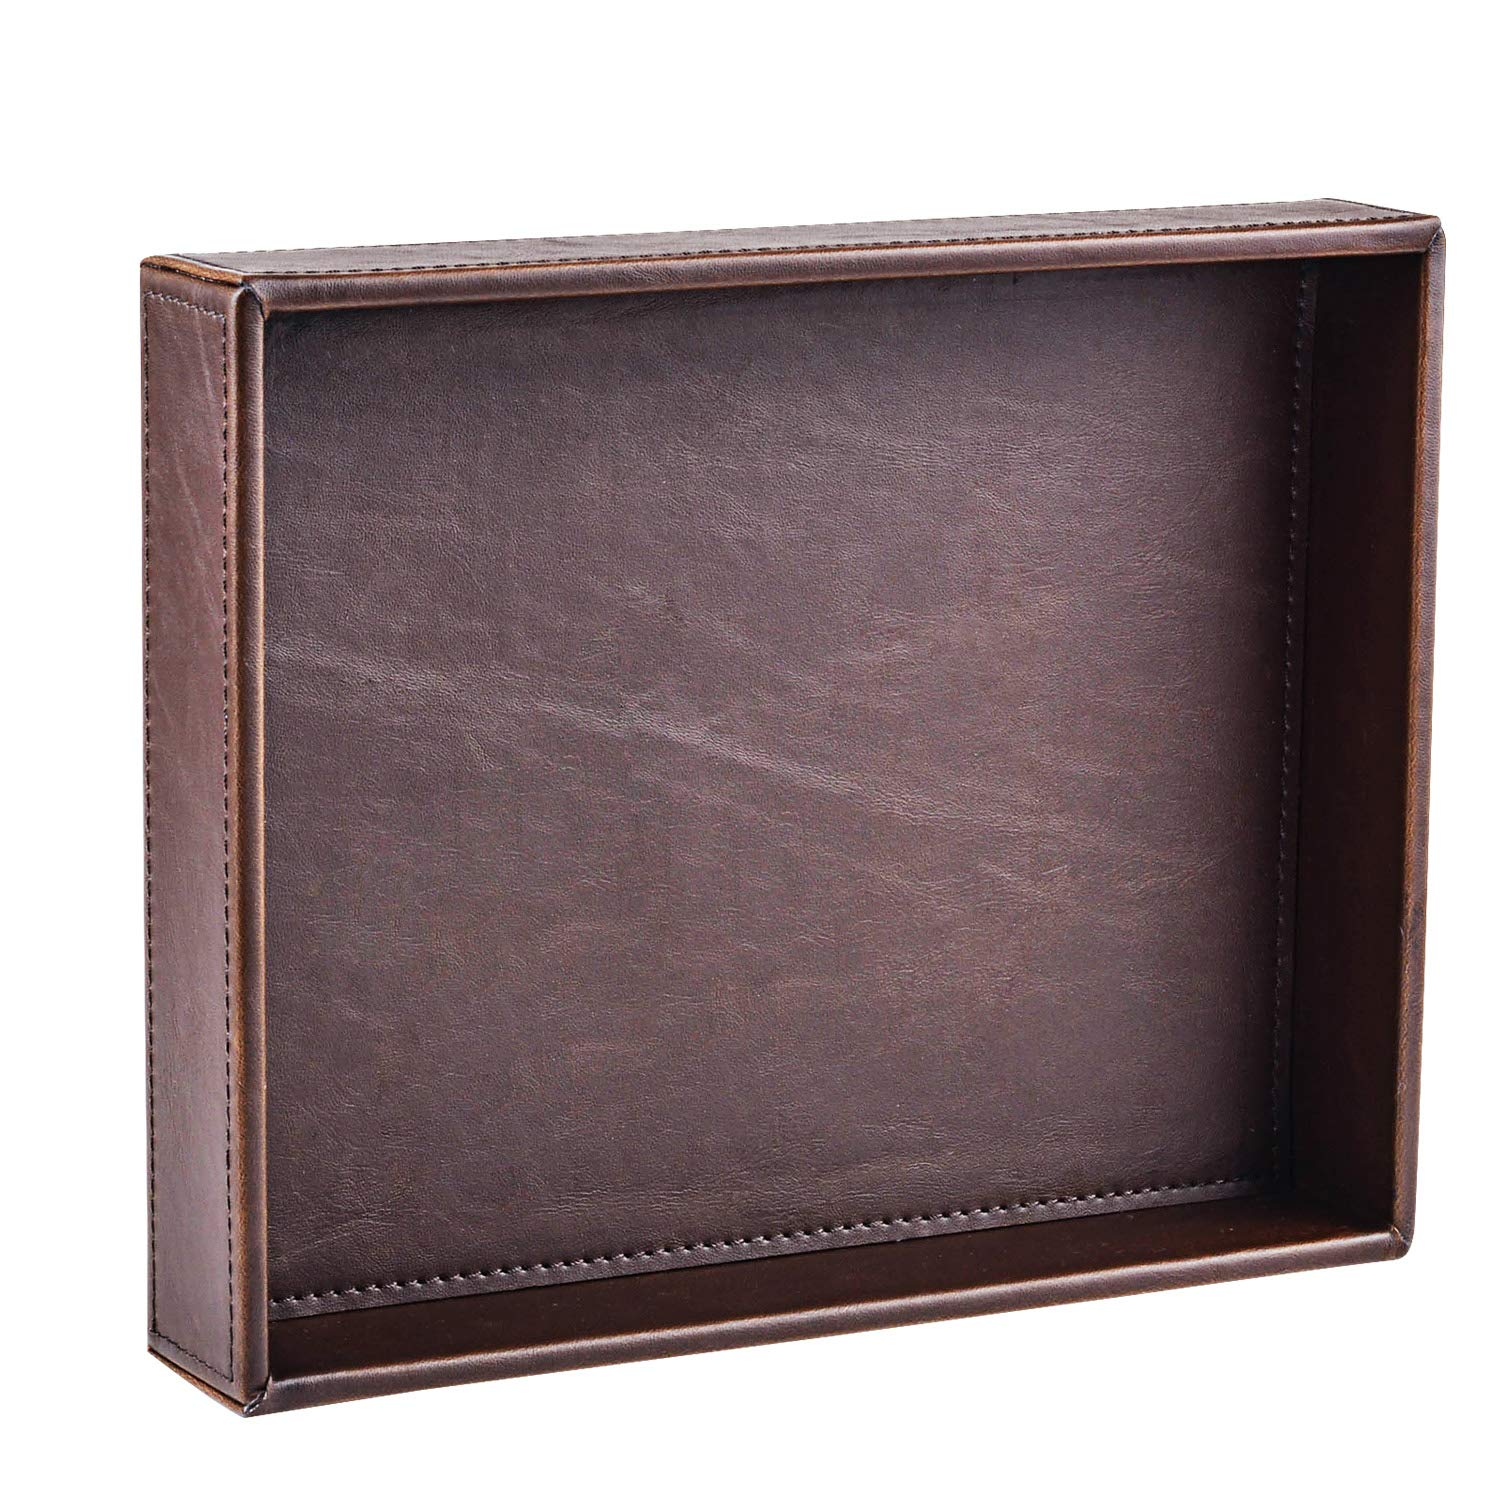 Decor Trends Brown 10.2''x8.3'' Rectangle Vintage Leather Decorative Office Desktop Storage Catchall Tray,Valet Tray,Nightstand Dresser Key Tray